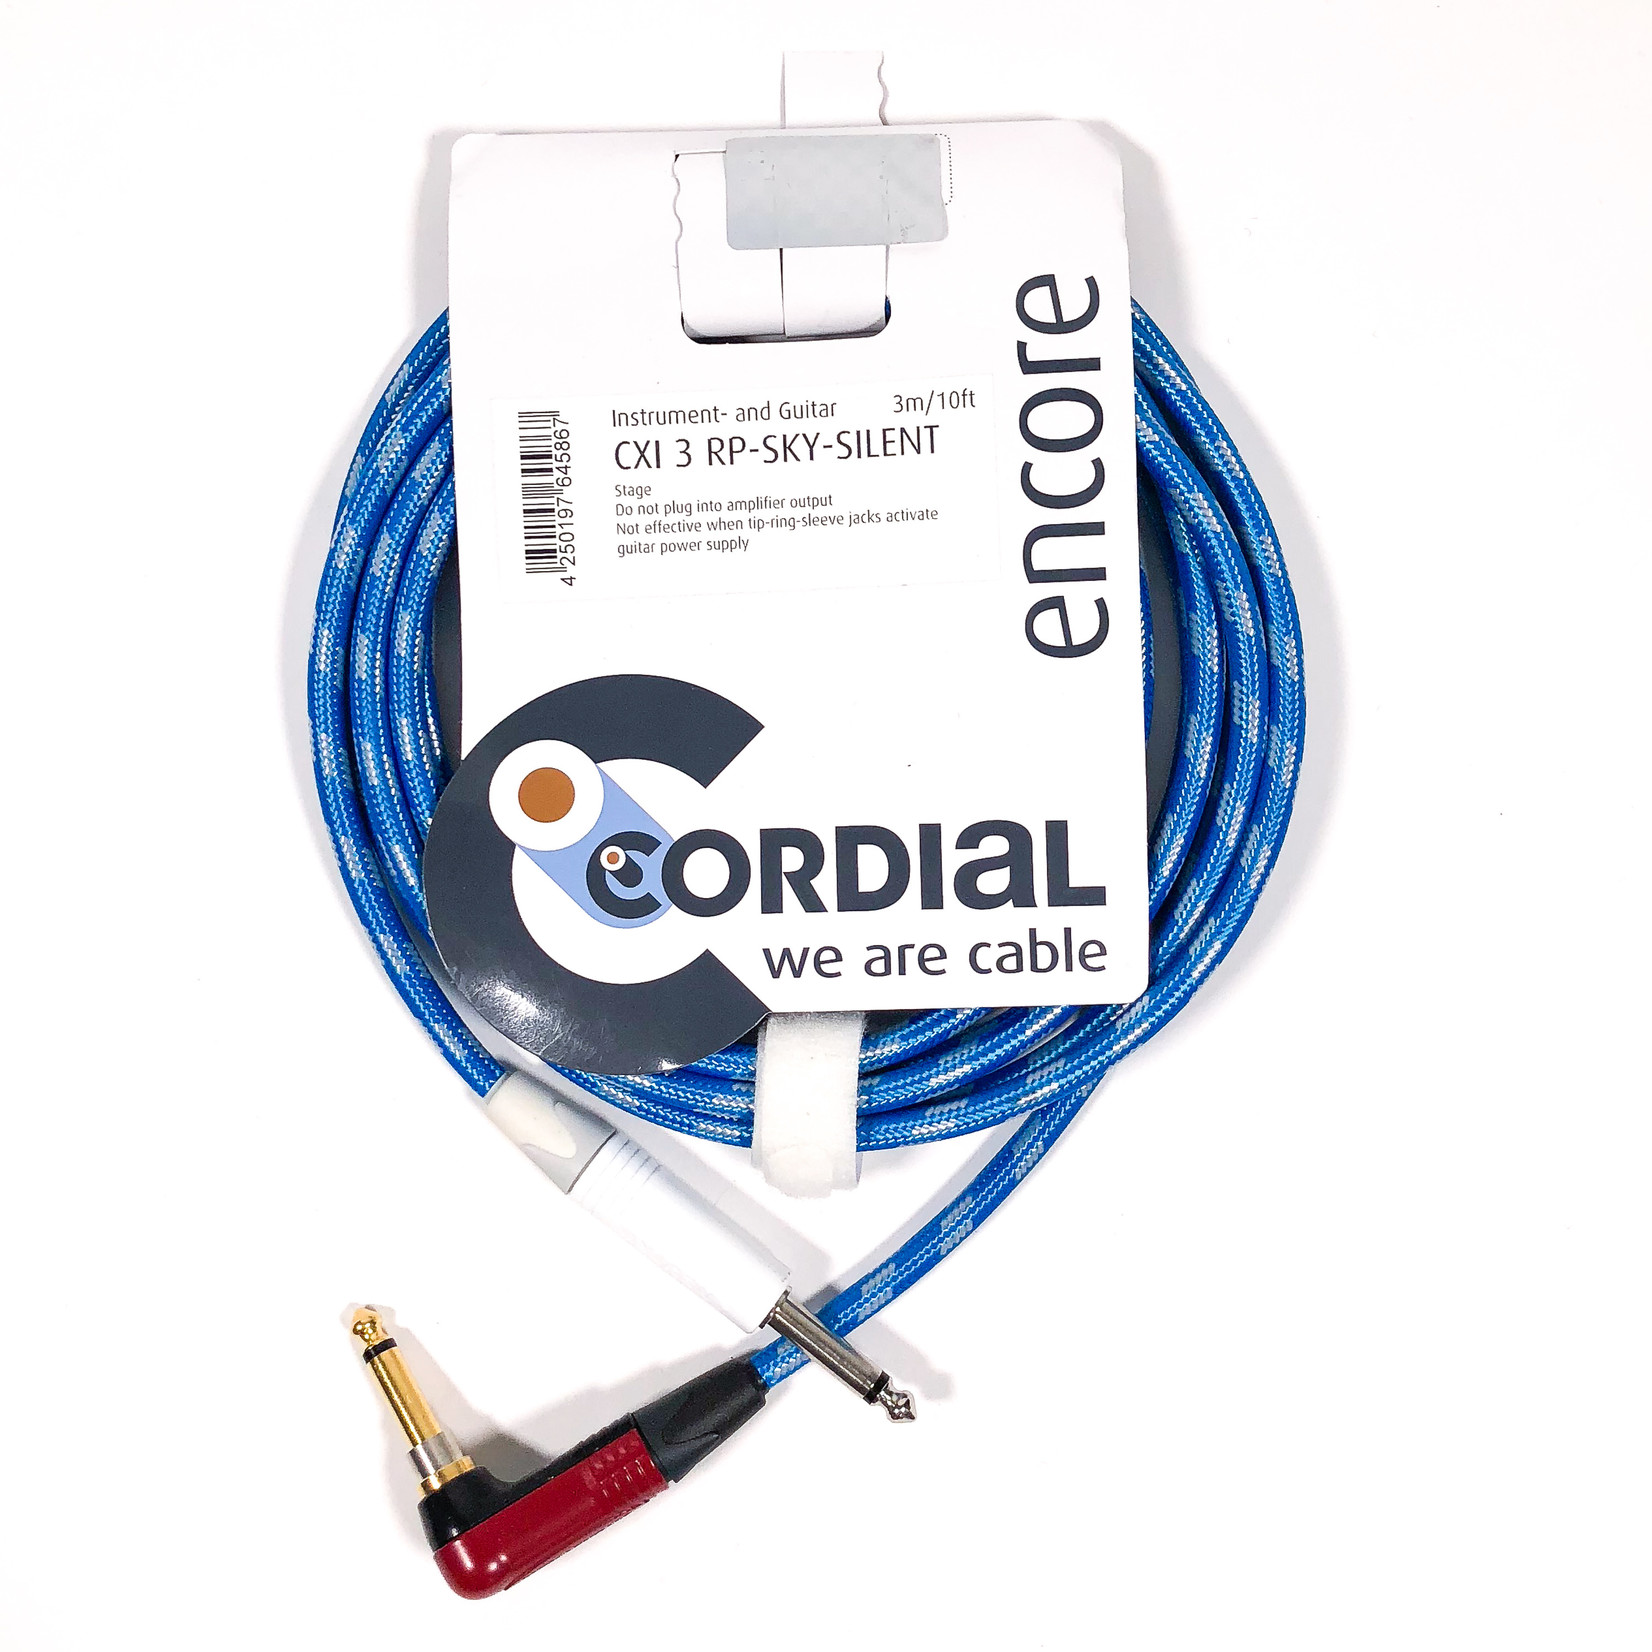 Cordial Cables Cordial 3m /~10ft Inst. Cable, 1/4'' Neutrik Conns. w/ RA silentPLUG , CXI 3 RP-SKY-SILENT (Germany)